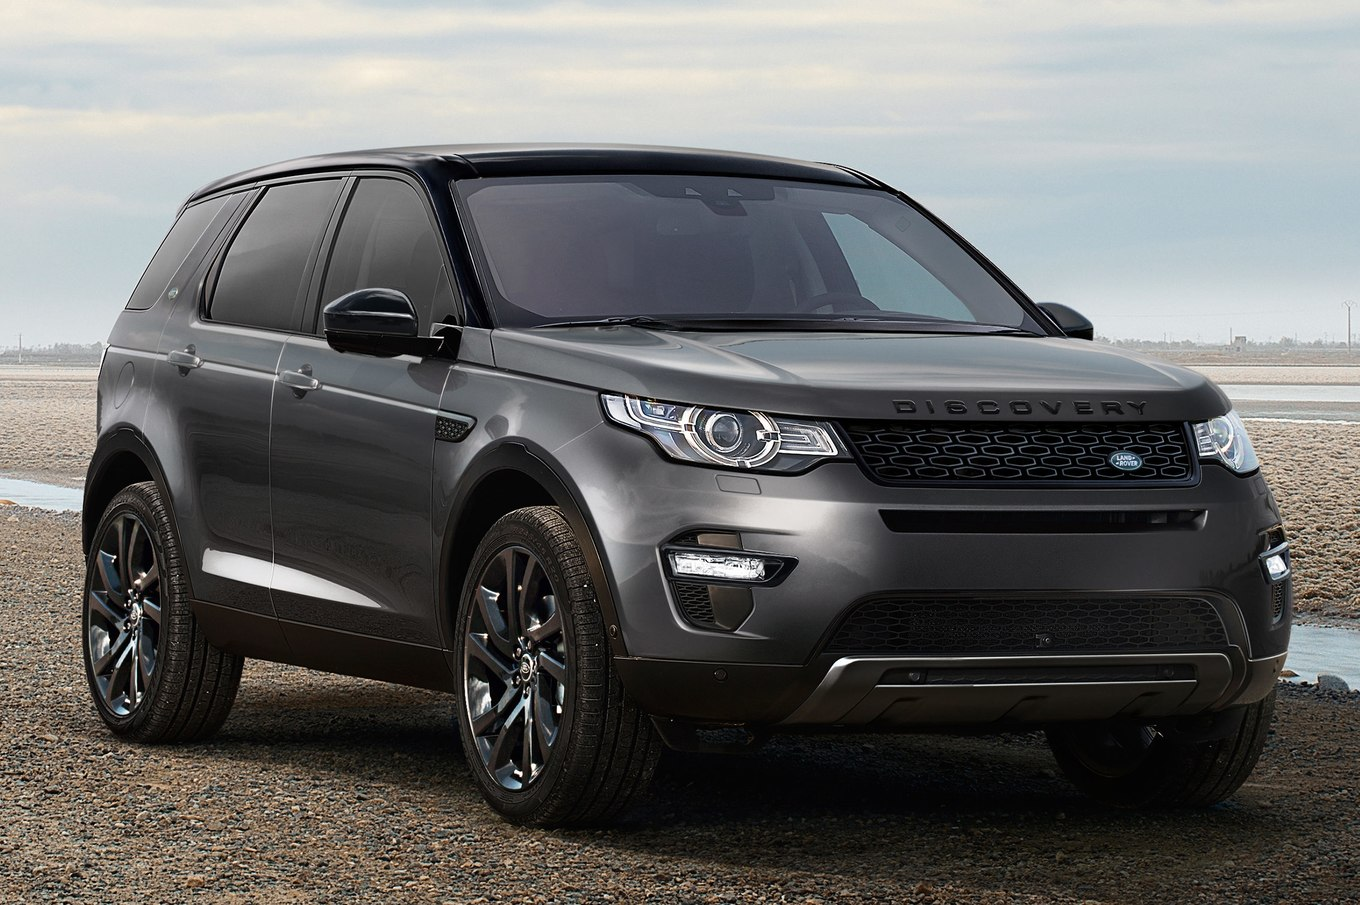 Land rover discovery photo - 9